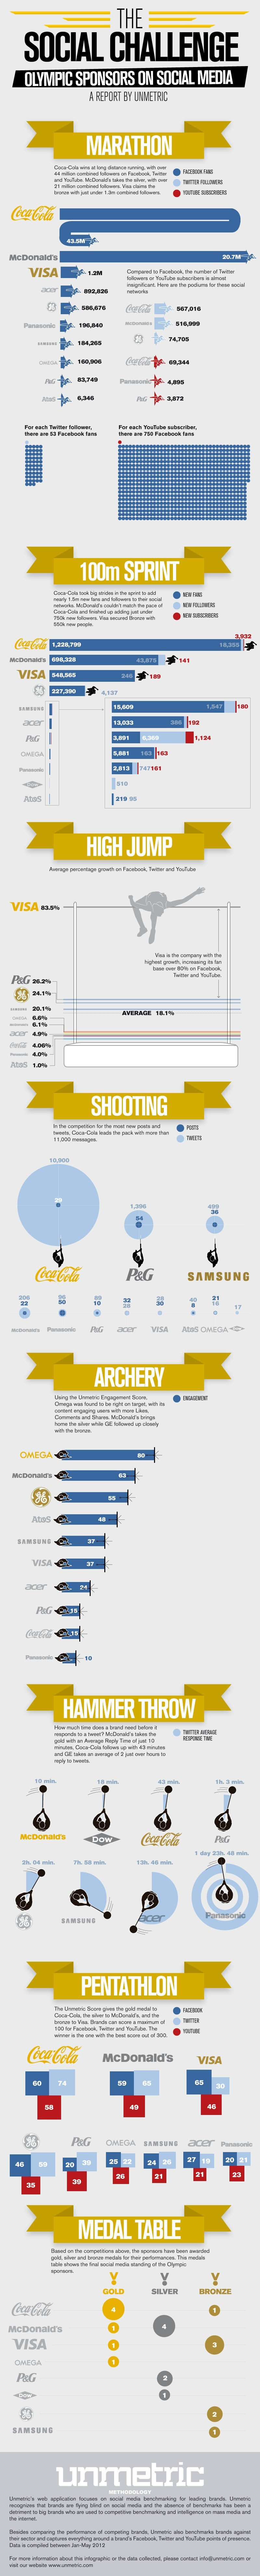 3. Olympic Sponsors Go For Gold Online